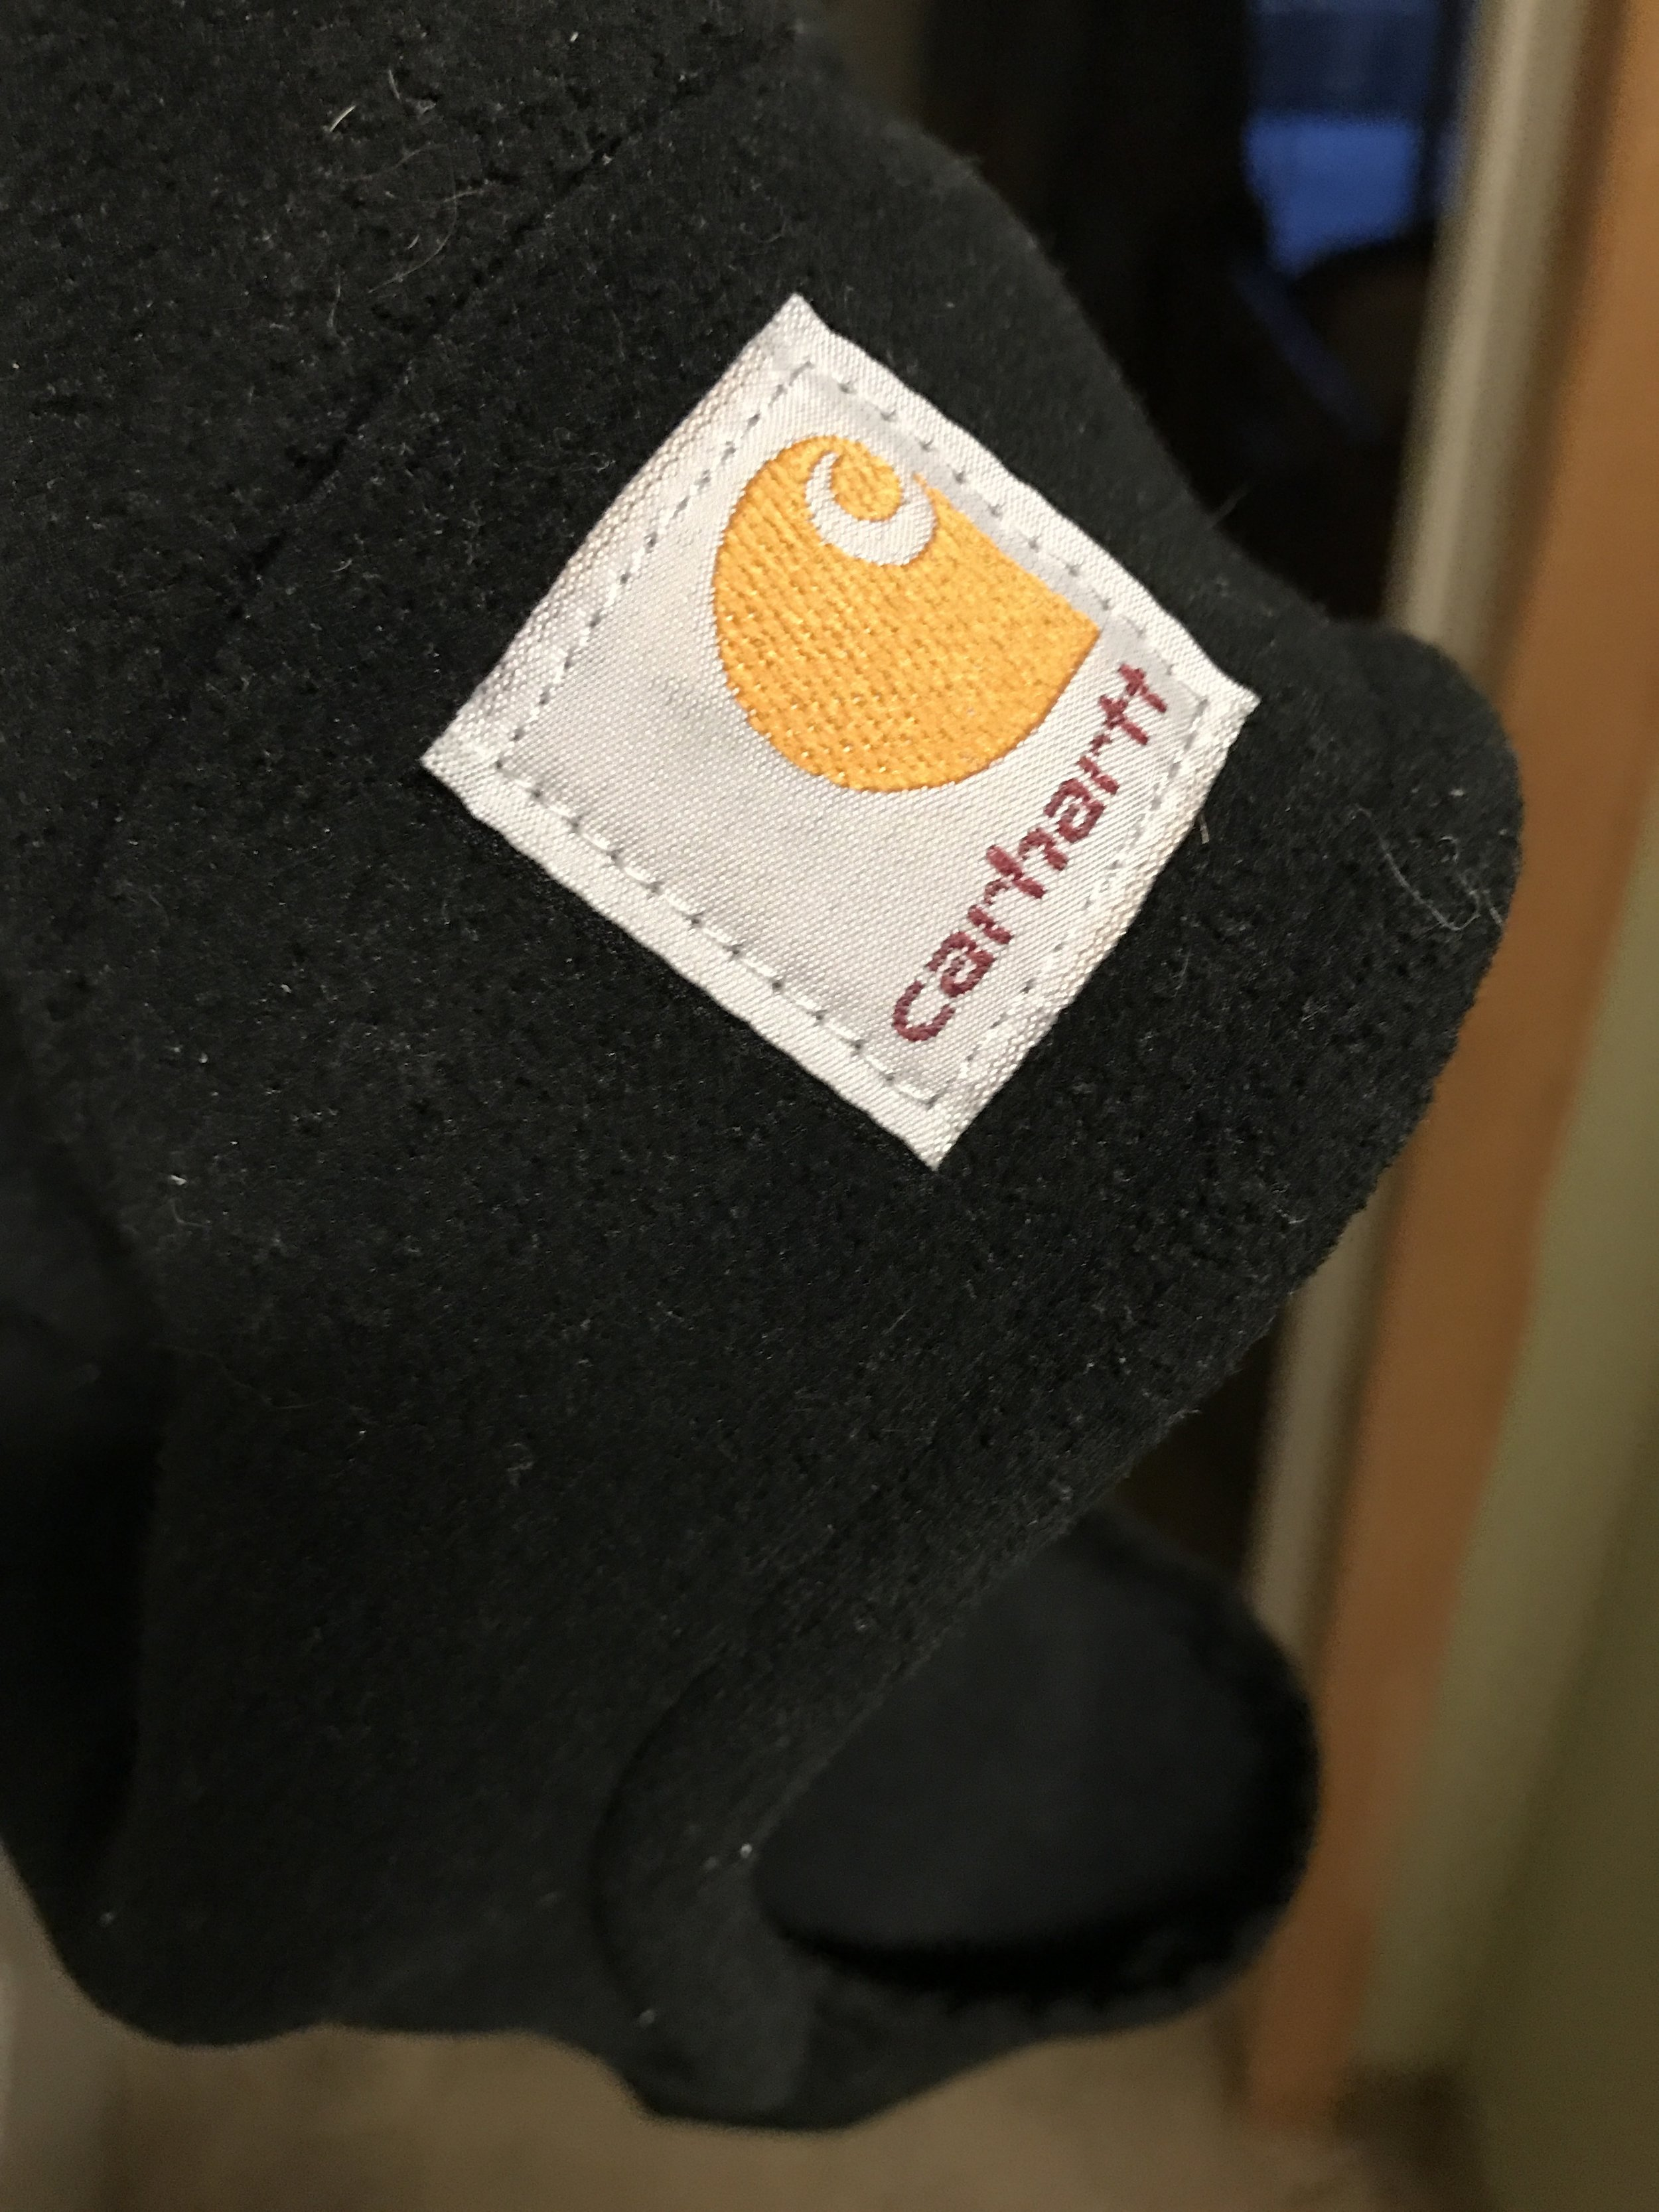 We love Carhartt brand! We each have a  Carhartt beanie . Mr. V.'s is a good knit one, and mine has fleece...which I am rapidly beginning to insist upon for the cold. We actually got ours at CalRanch, but they have them on Amazon too.